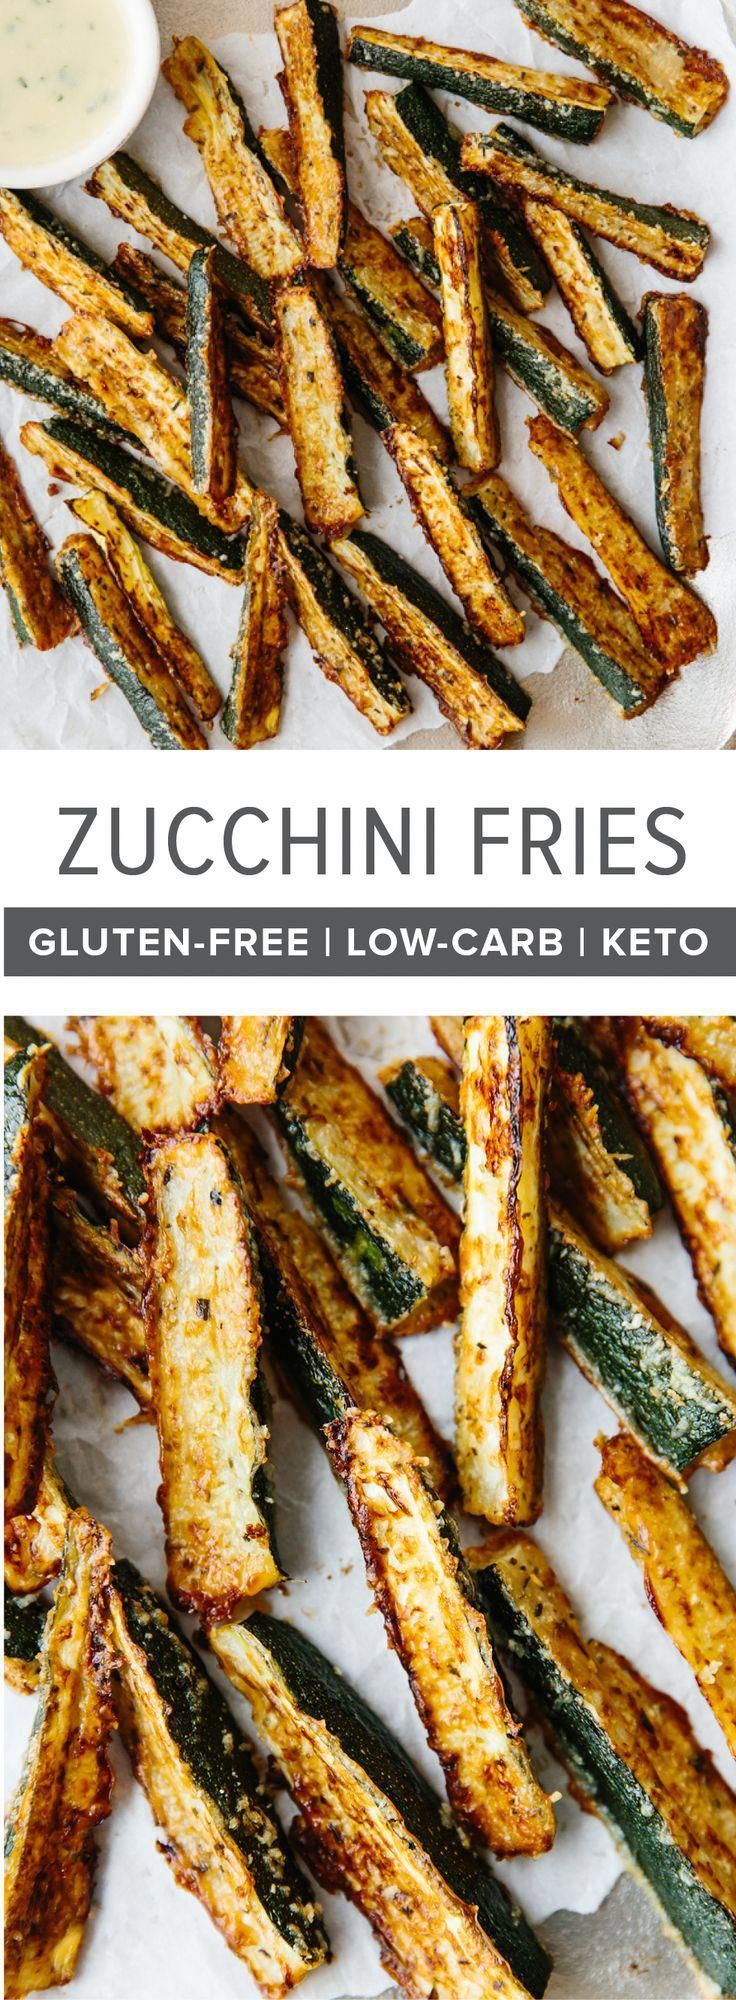 These baked zucchini fries are ultra cheesy and flavorful with freshly grated Parmesan cheese Theyre also glutenfree lowcarb paleo and ketofriendly for a delicious health...